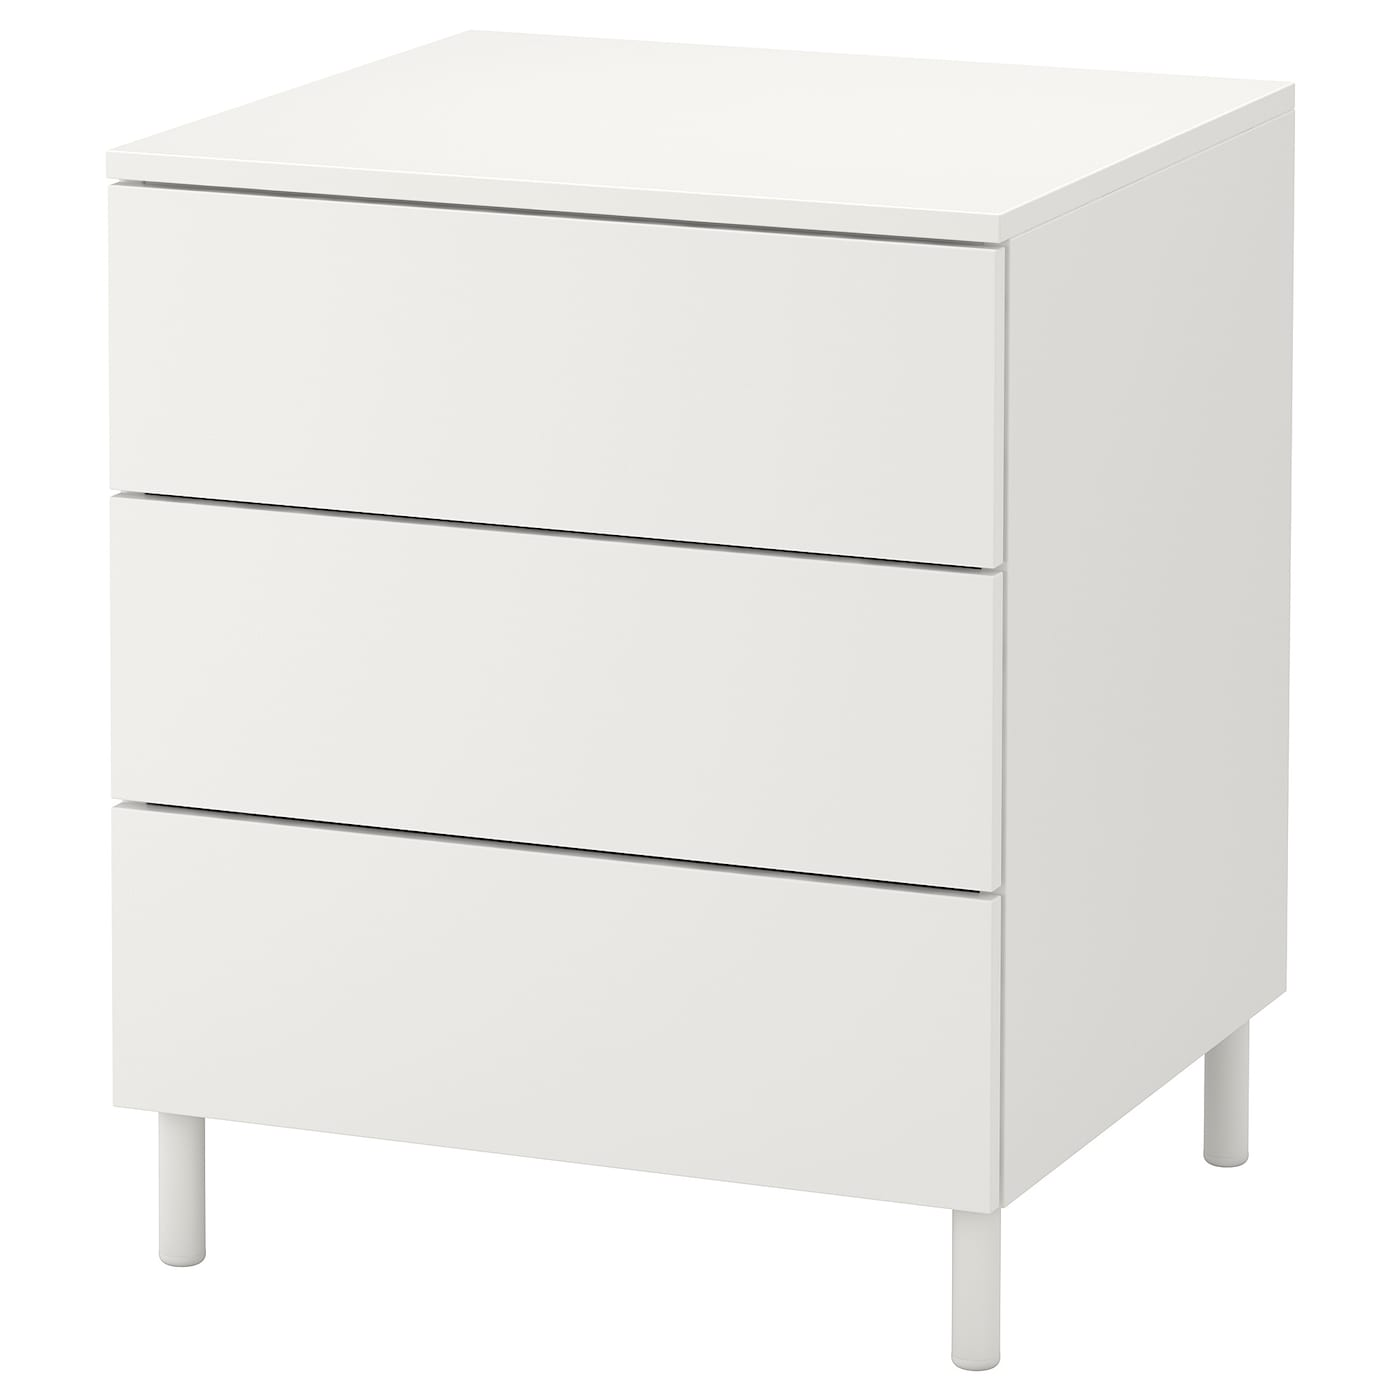 Platsa commode 3 tiroirs blanc fonnes blanc 60x55x73 cm ikea for Ikea blanc commode